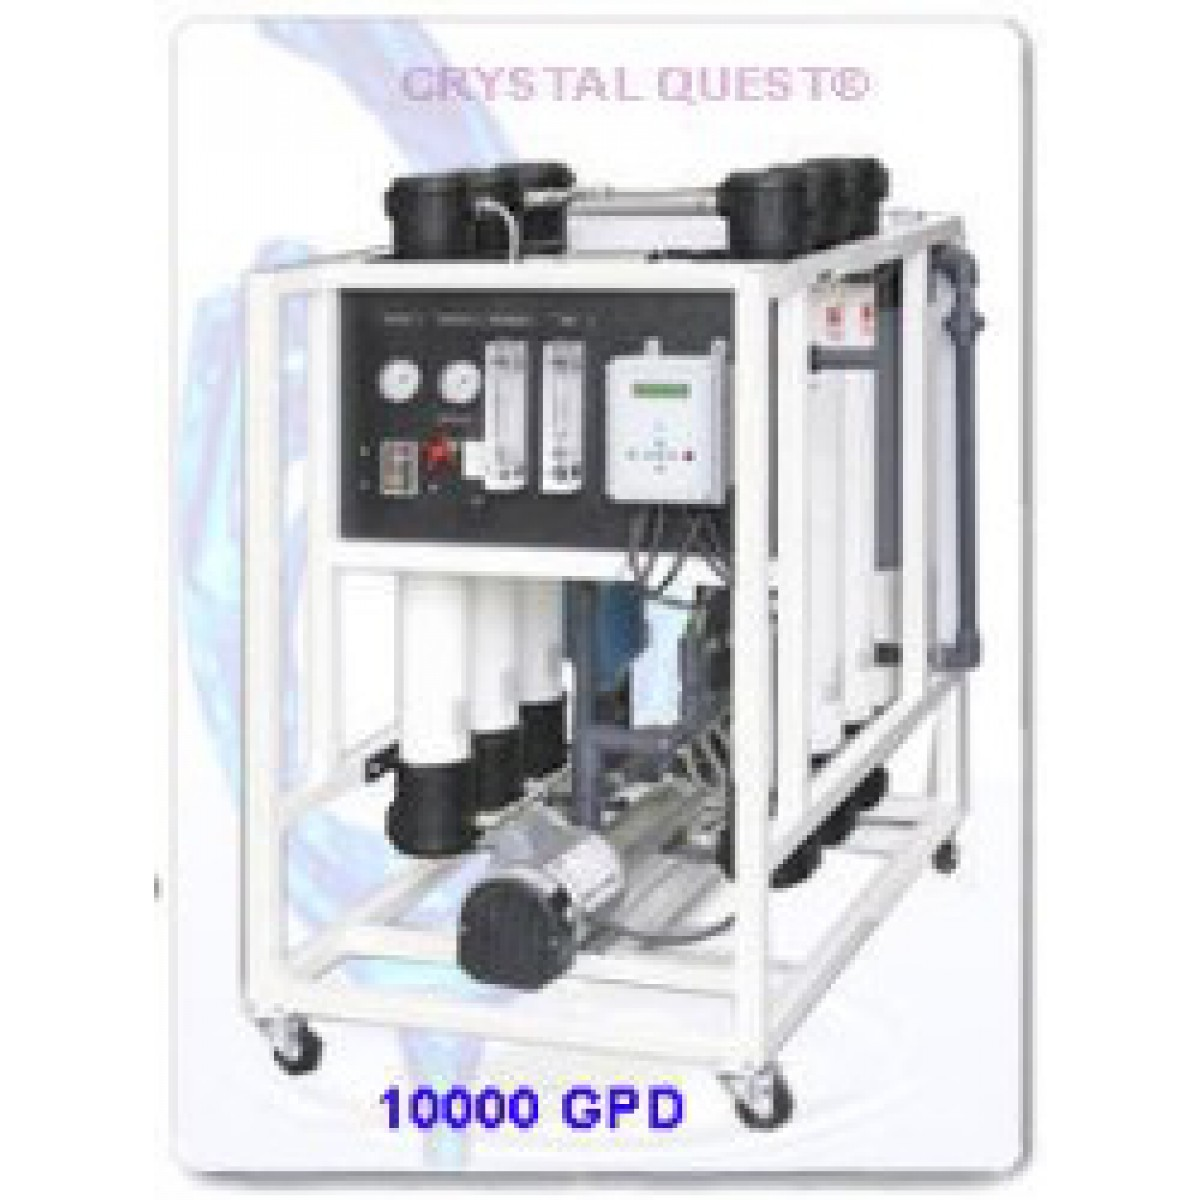 crystal quest commercial reverse osmosis 10000 gpd water filter system - Commercial Water Filtration System